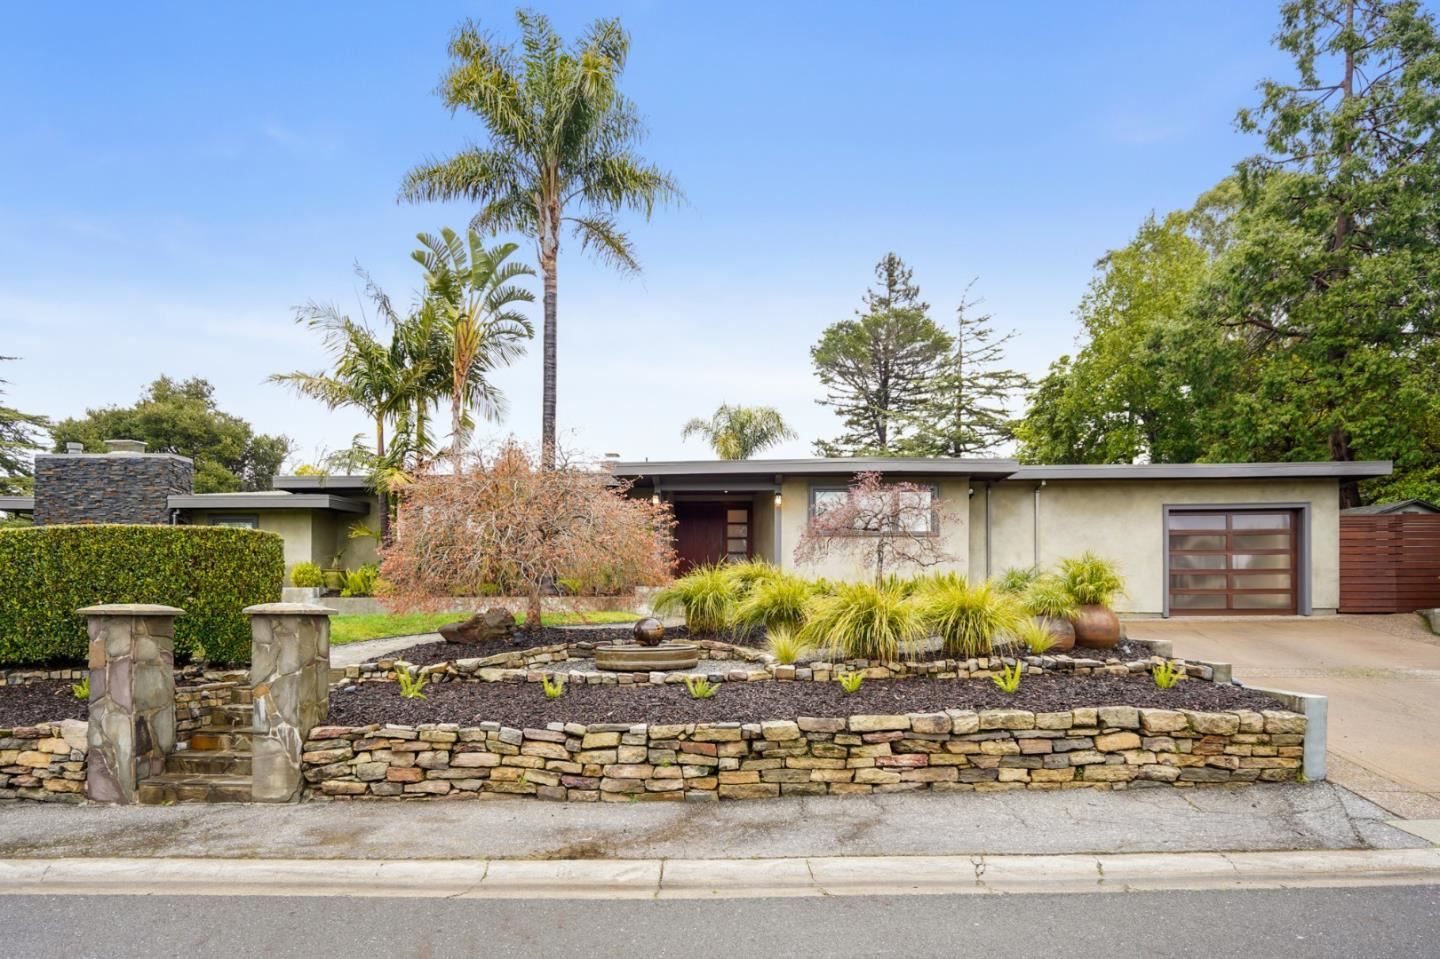 Photo for 2761 Summit DR, BURLINGAME, CA 94010 (MLS # ML81833874)